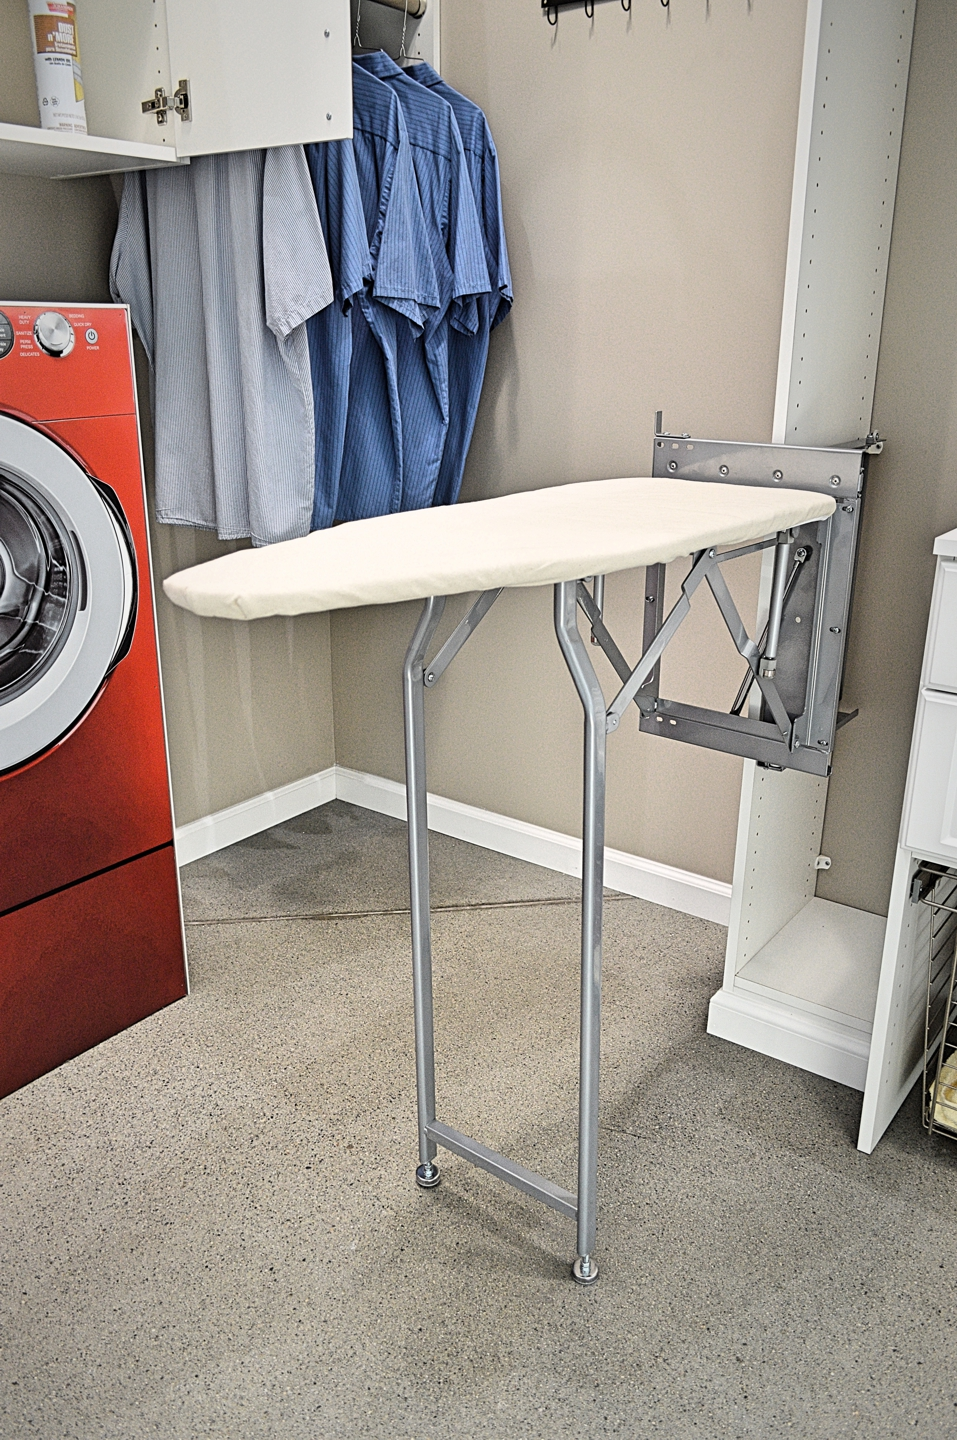 how to make a hide away ironing board